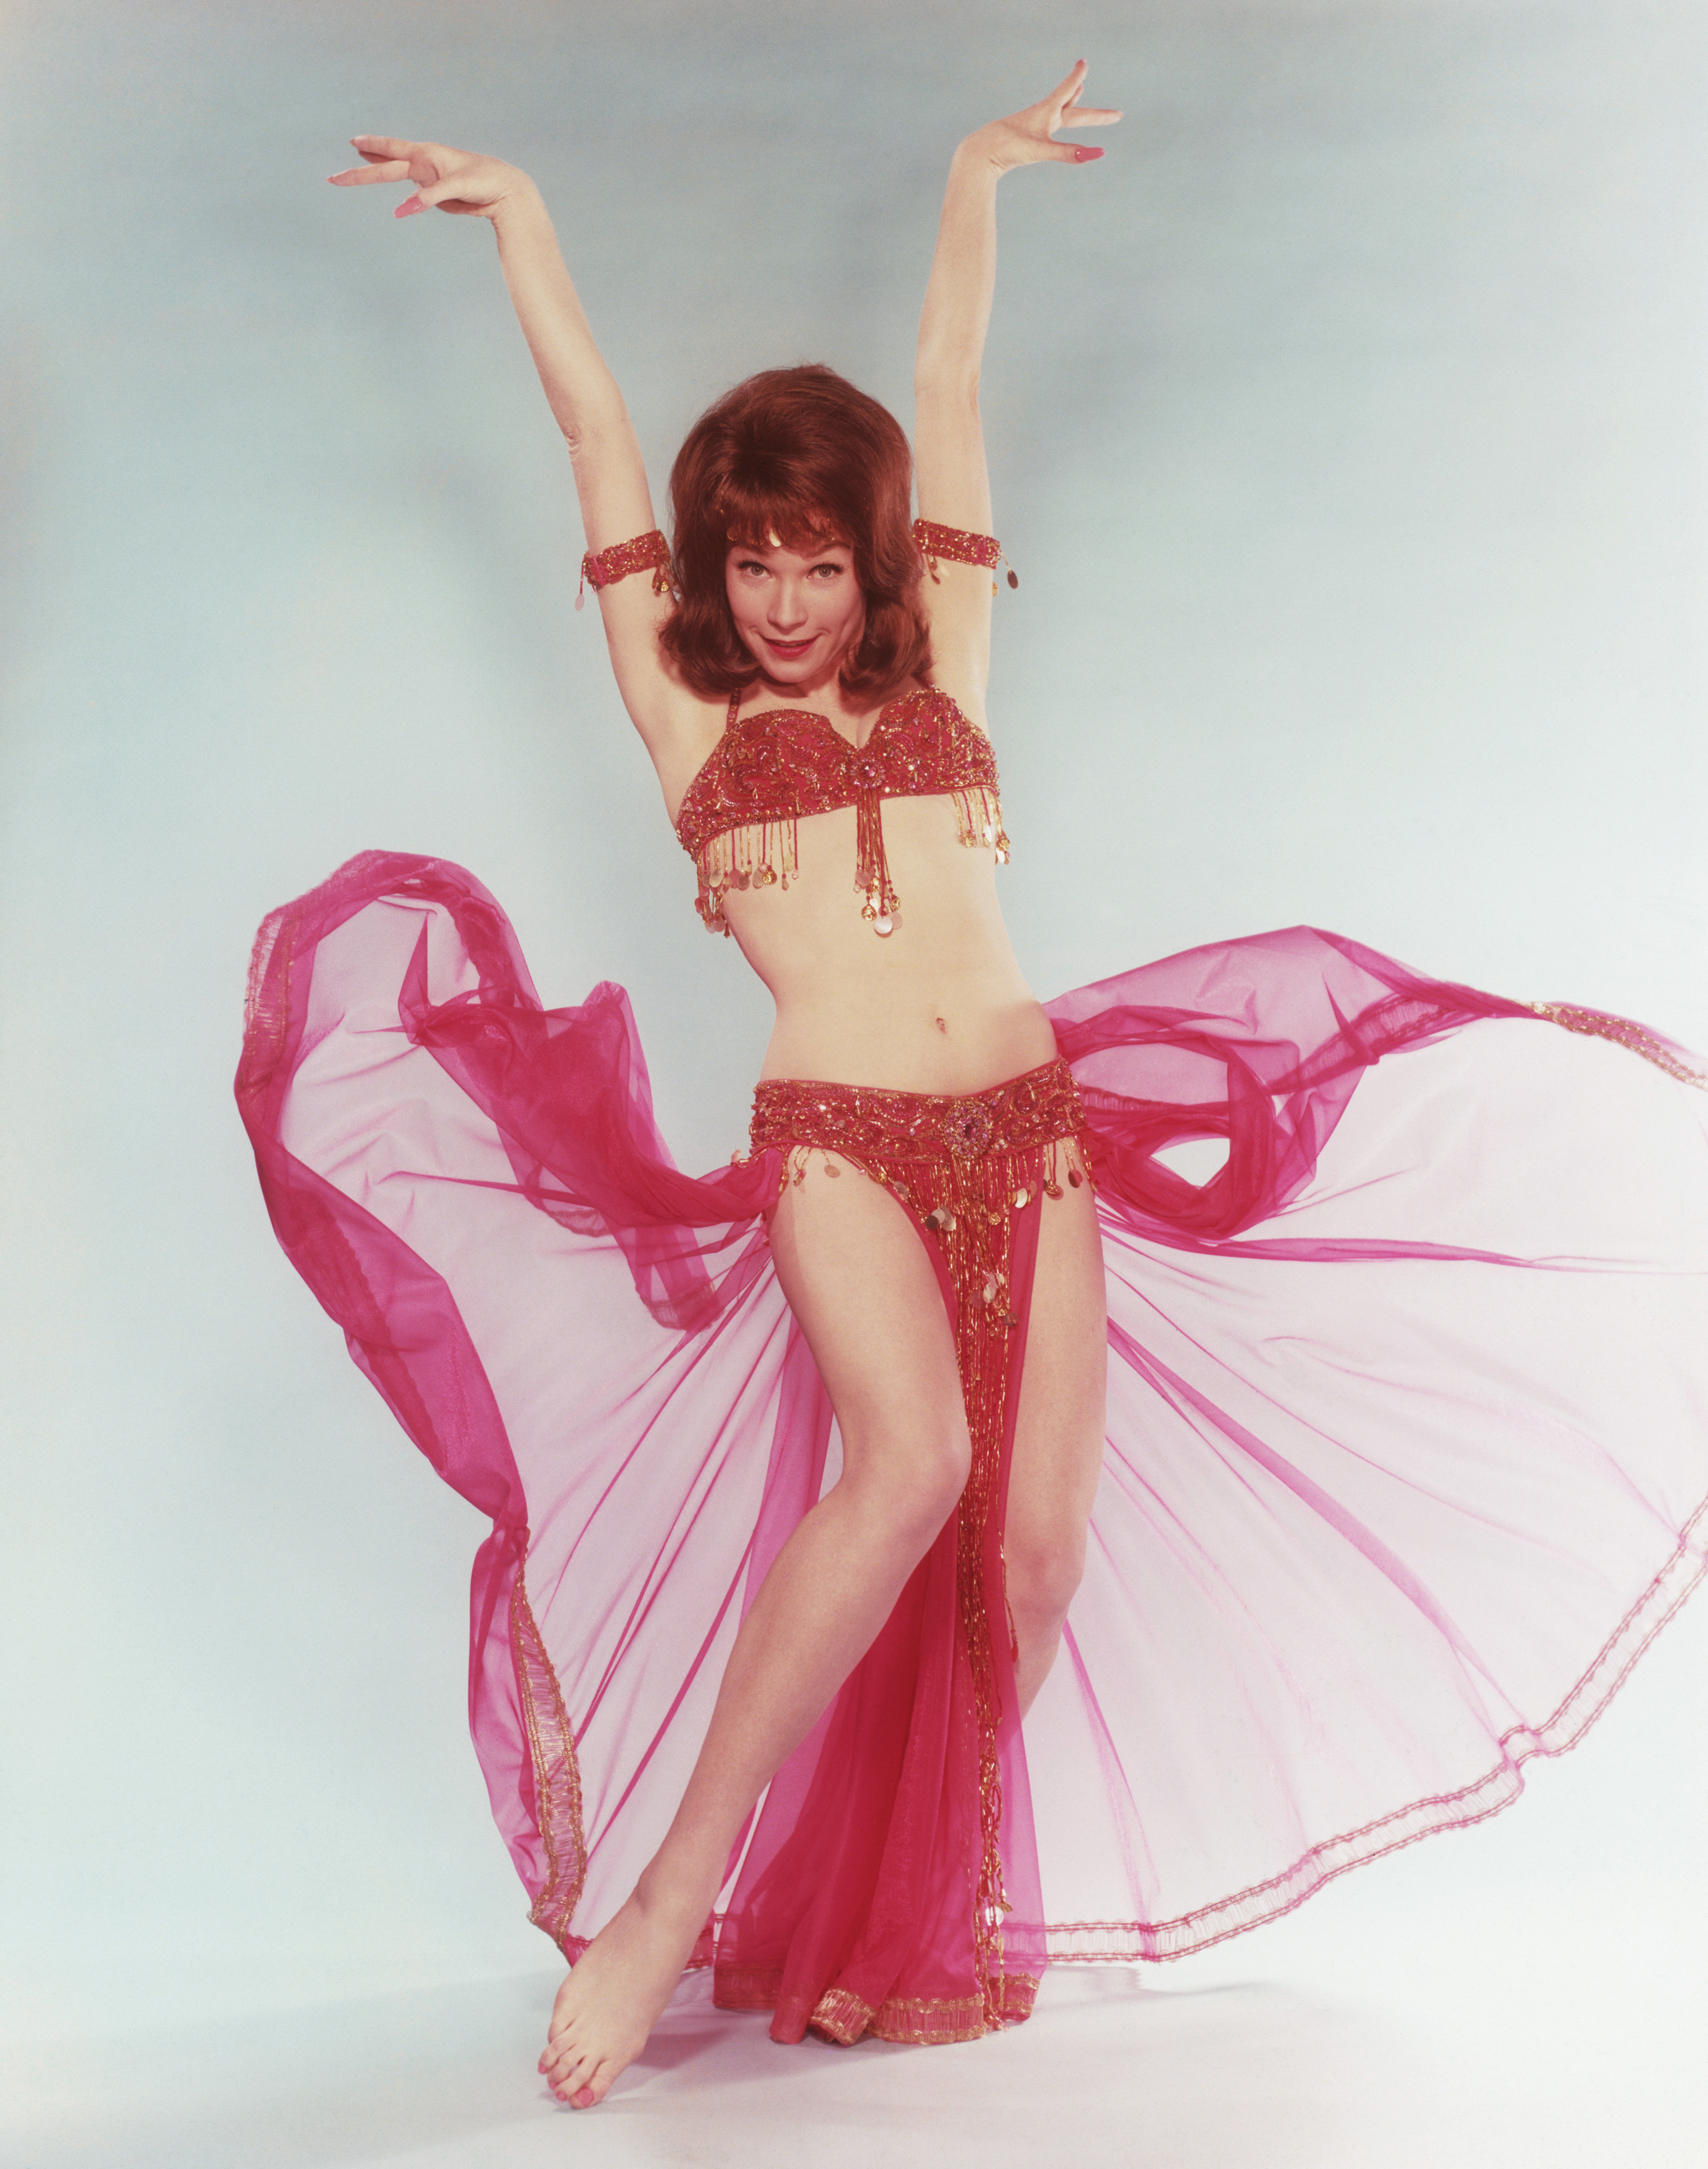 American actress Shirley Maclaine in a belly-dancing outfit in a publicity still for 'John Goldfarb, Please Come Home', directed by J. Lee Thompson, 1965. (Photo by Keystone/Hulton Archive/Getty Images)